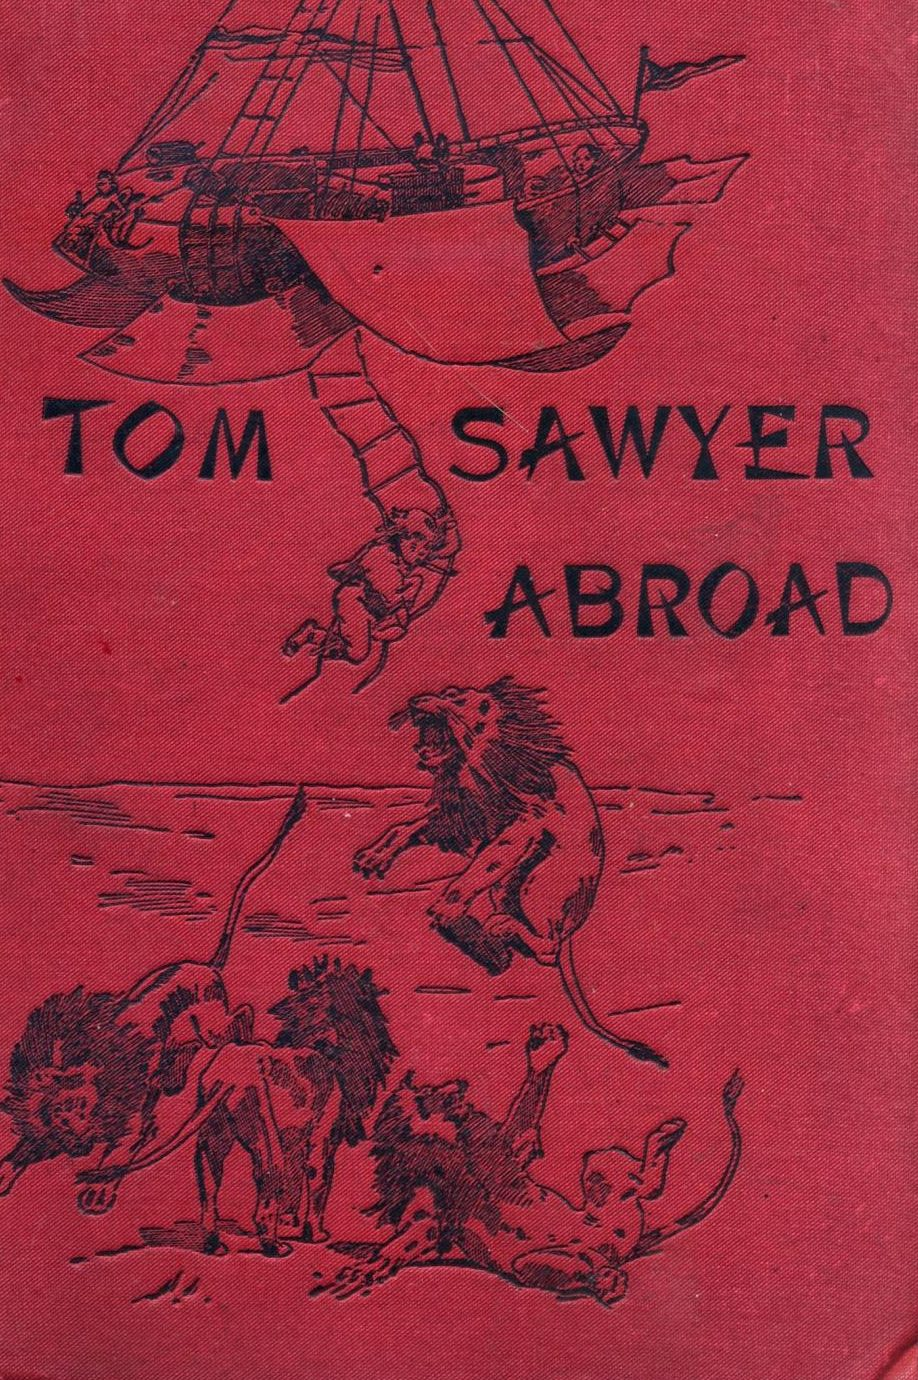 Tom Sawyer Abroad by Mark Twain